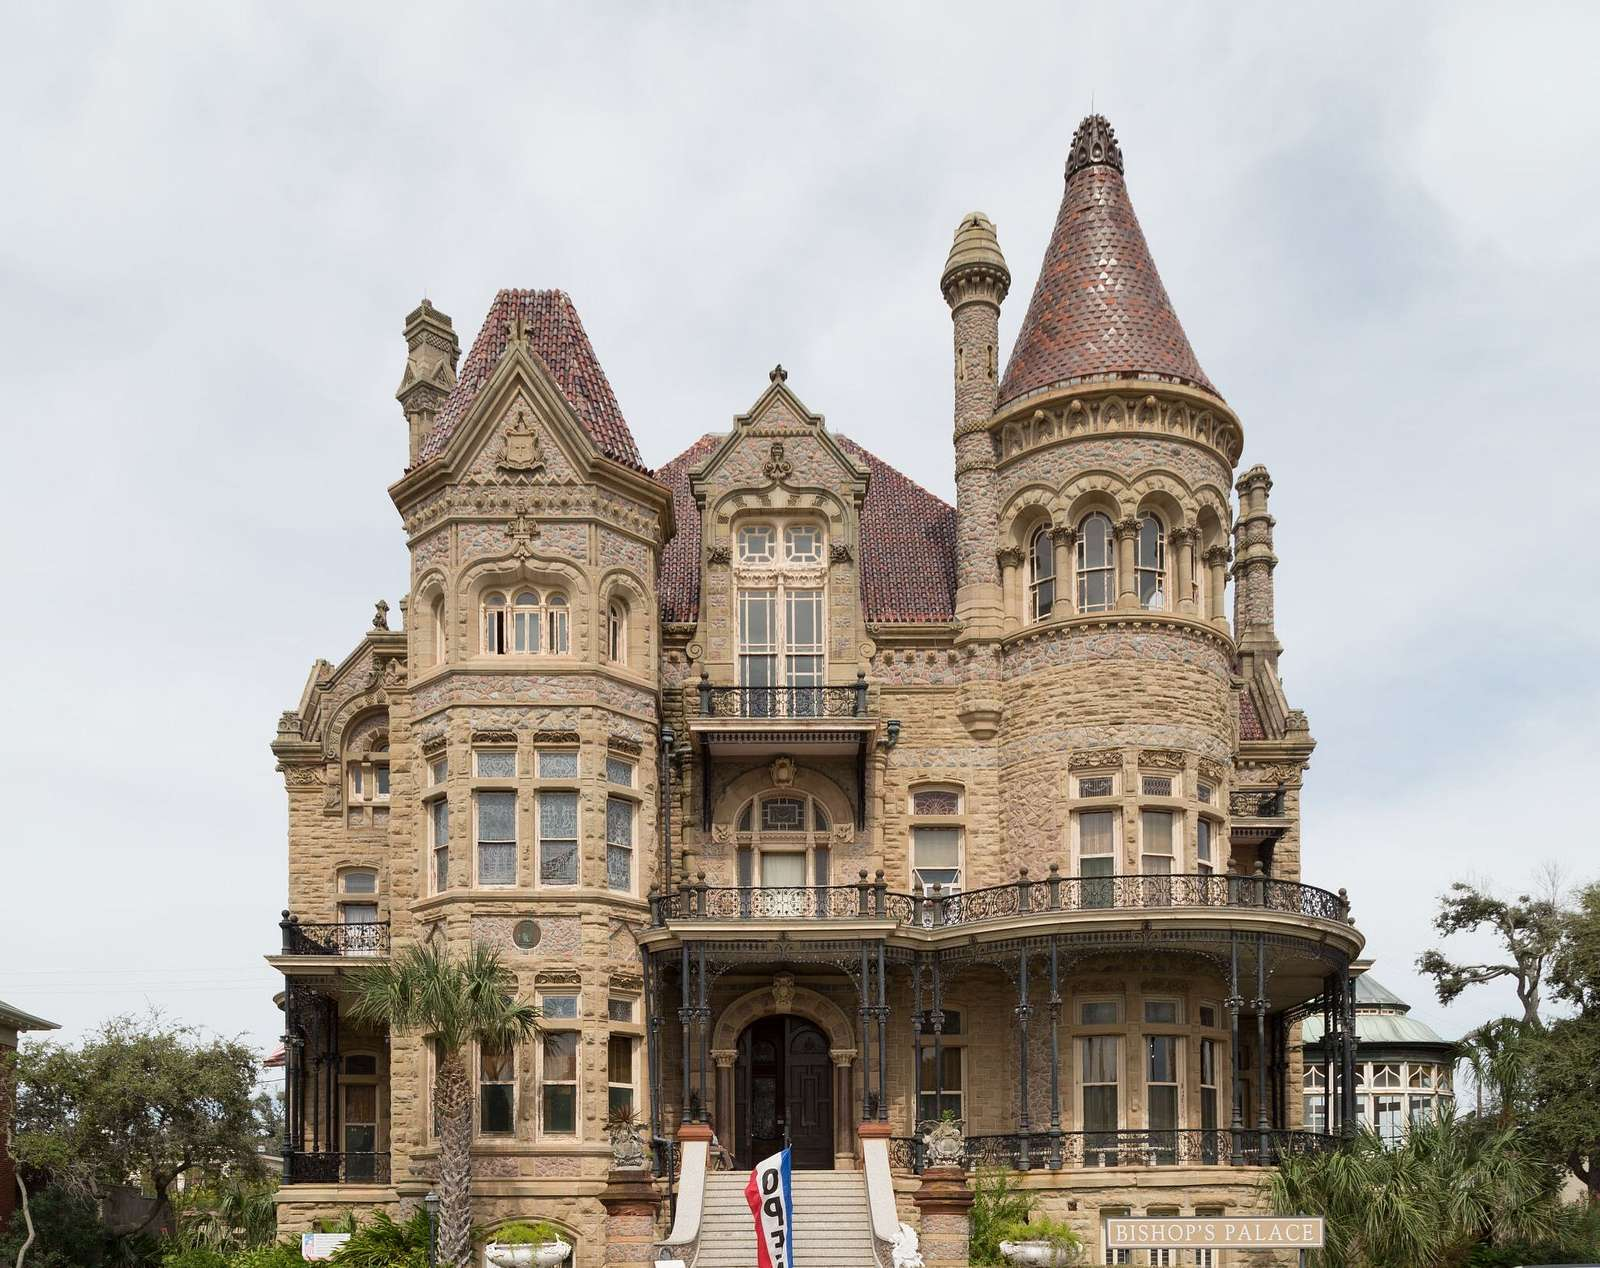 """Bishop's Palace,"" also known as Gresham's Castle, an ornate Victorian-style house, located on Broadway and 14th Street in the East End Historic District of Galveston, Texas"